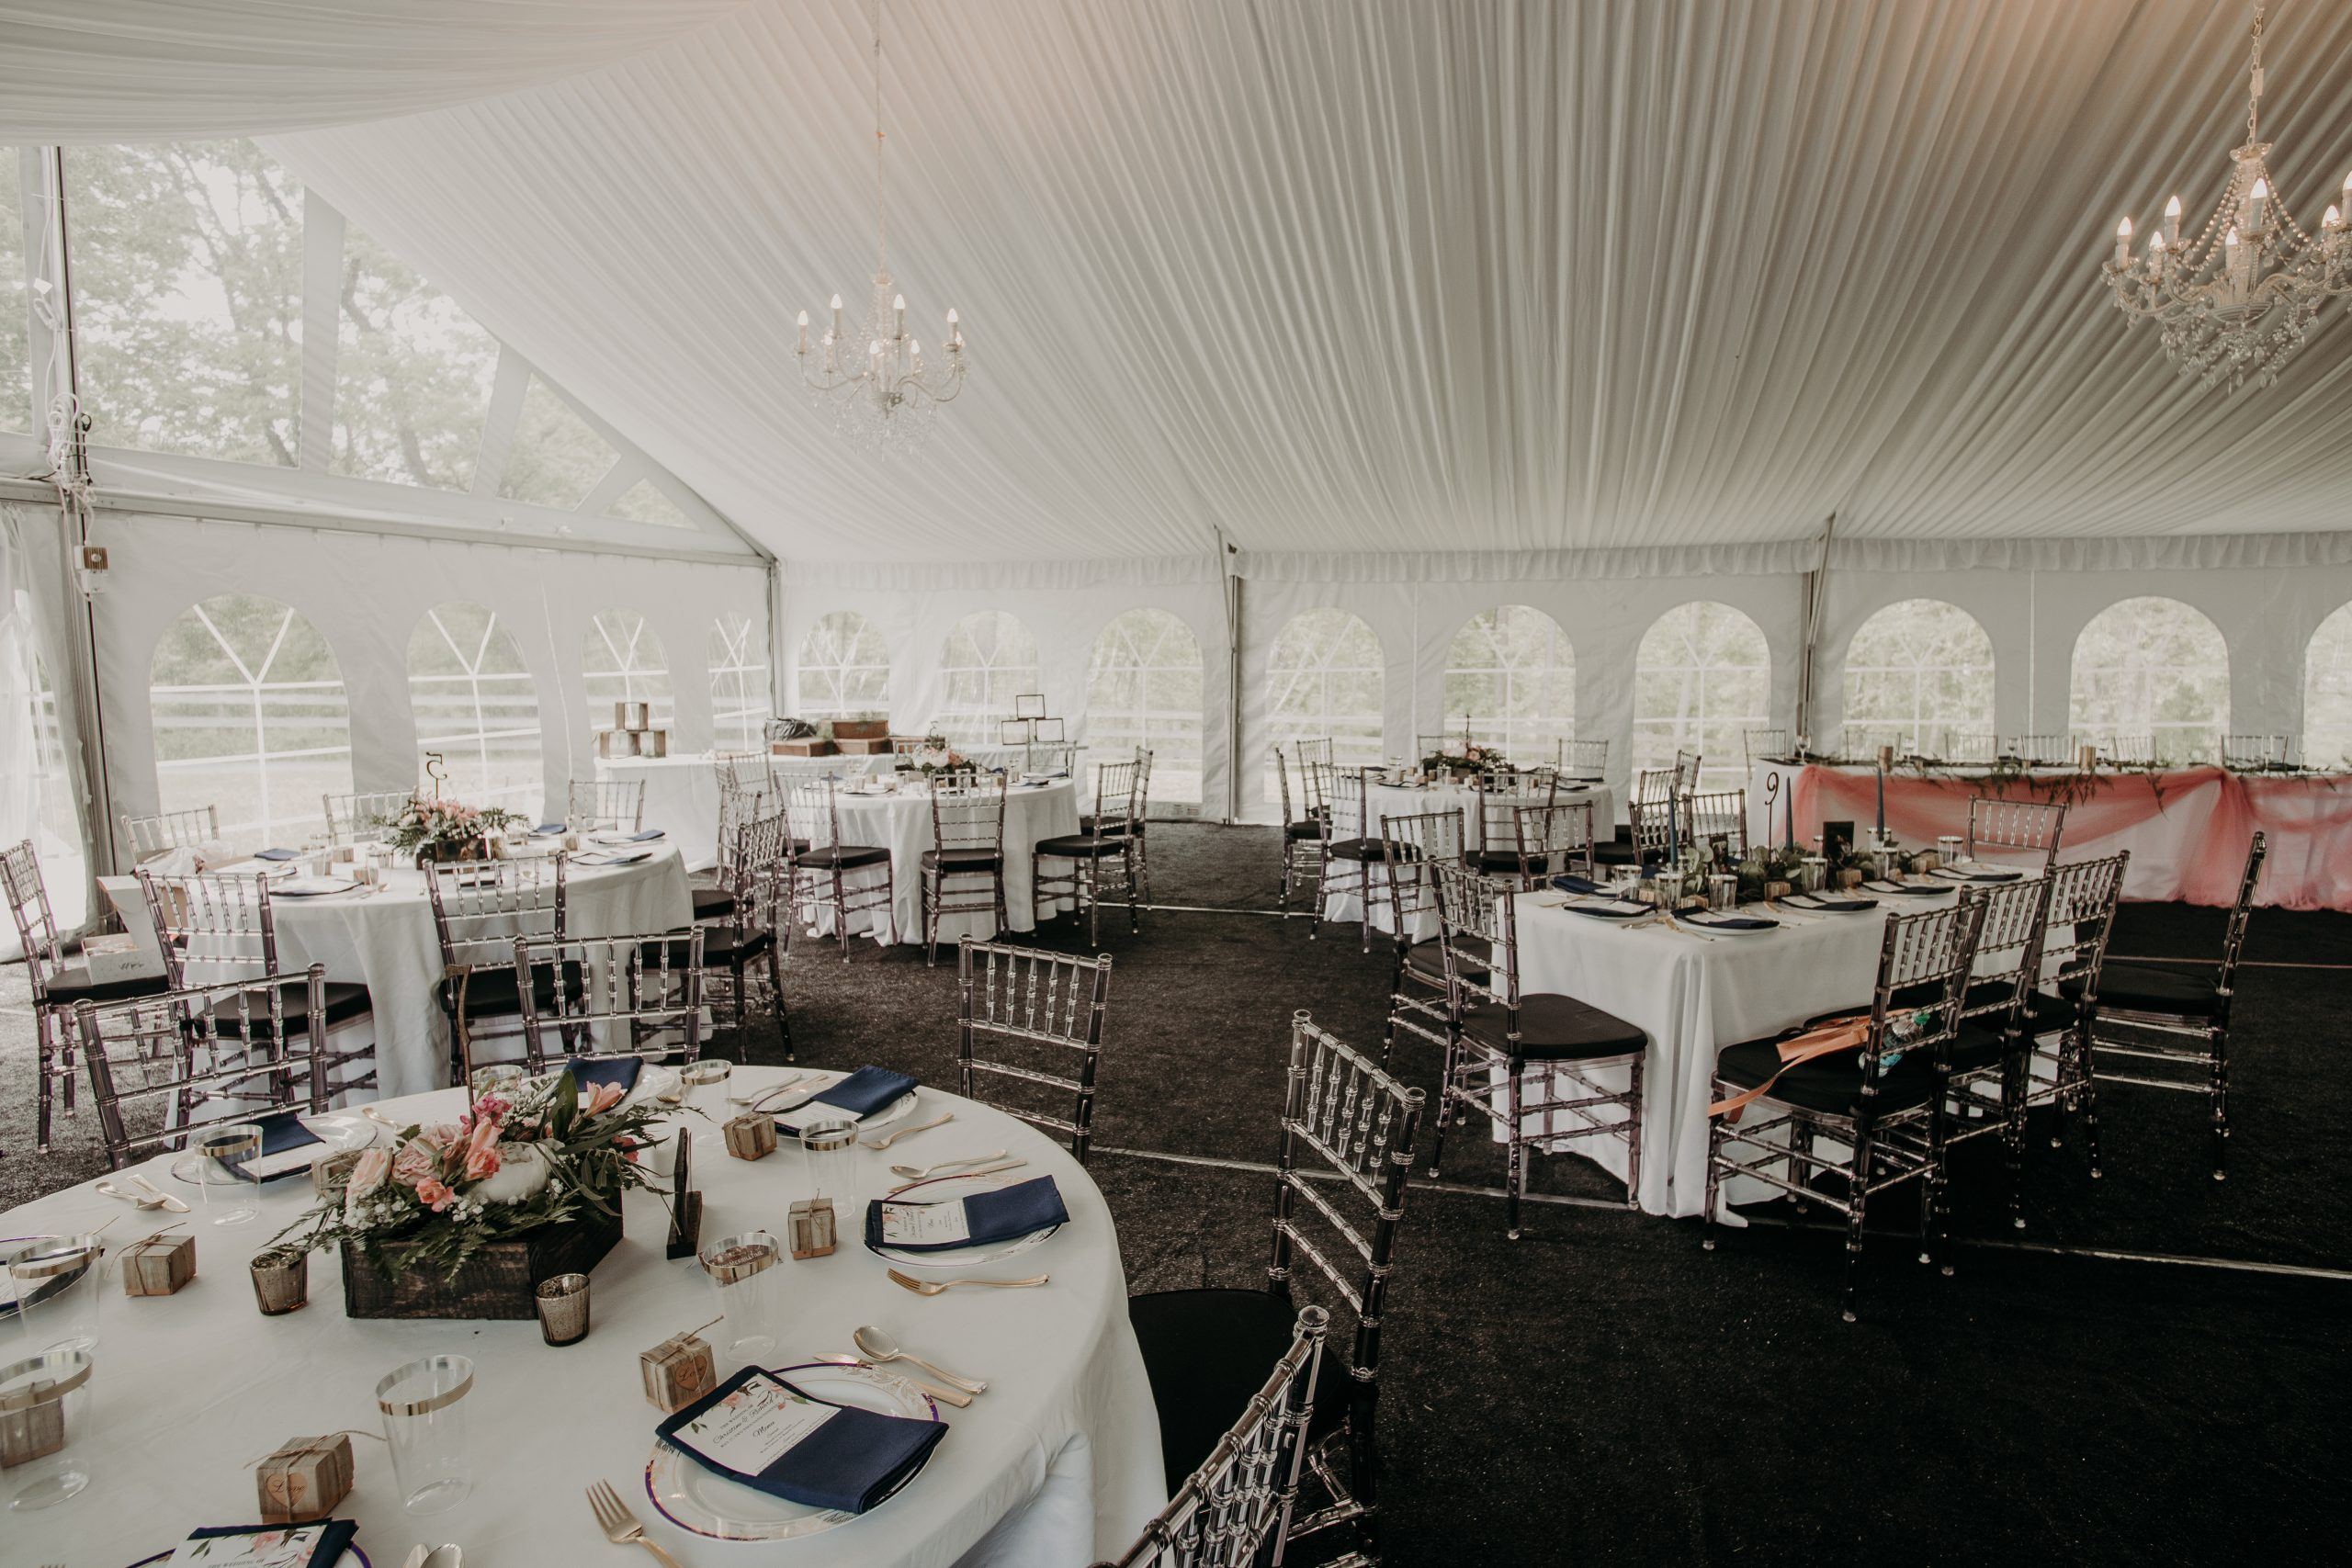 the venue offered clean white lines, a wide open space and plenty of natural lighting. Christine and Richard wed on the Chestnut Hill Villa grounds on May of 2019. This organic ethereal styled wedding was captured by Garnet Dahlia Photography and featured on Dream Weddings.